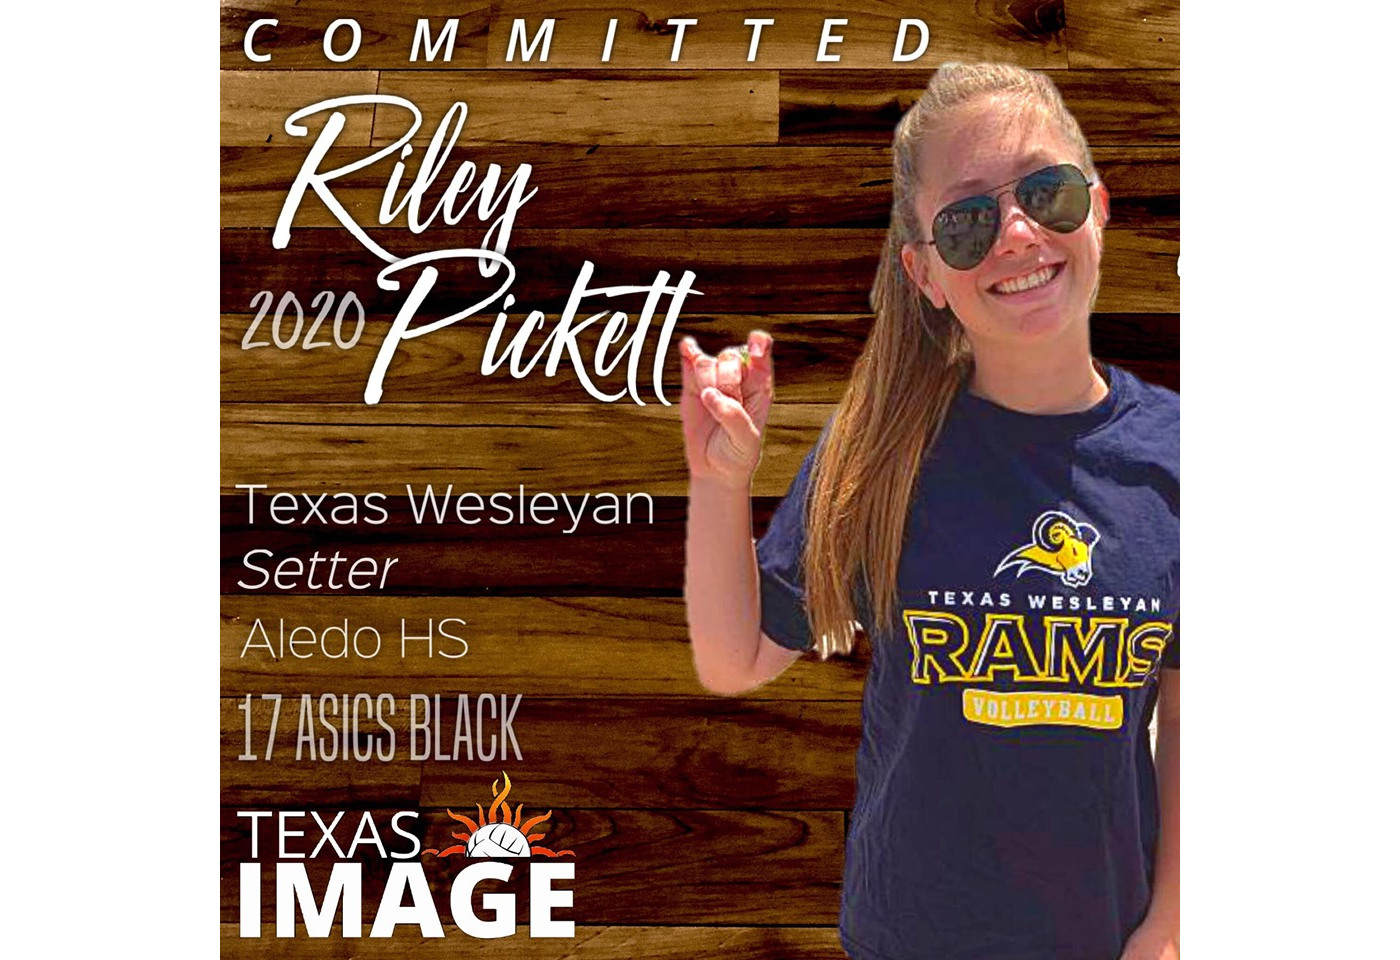 Riley Pickett - Texas Wesleyan